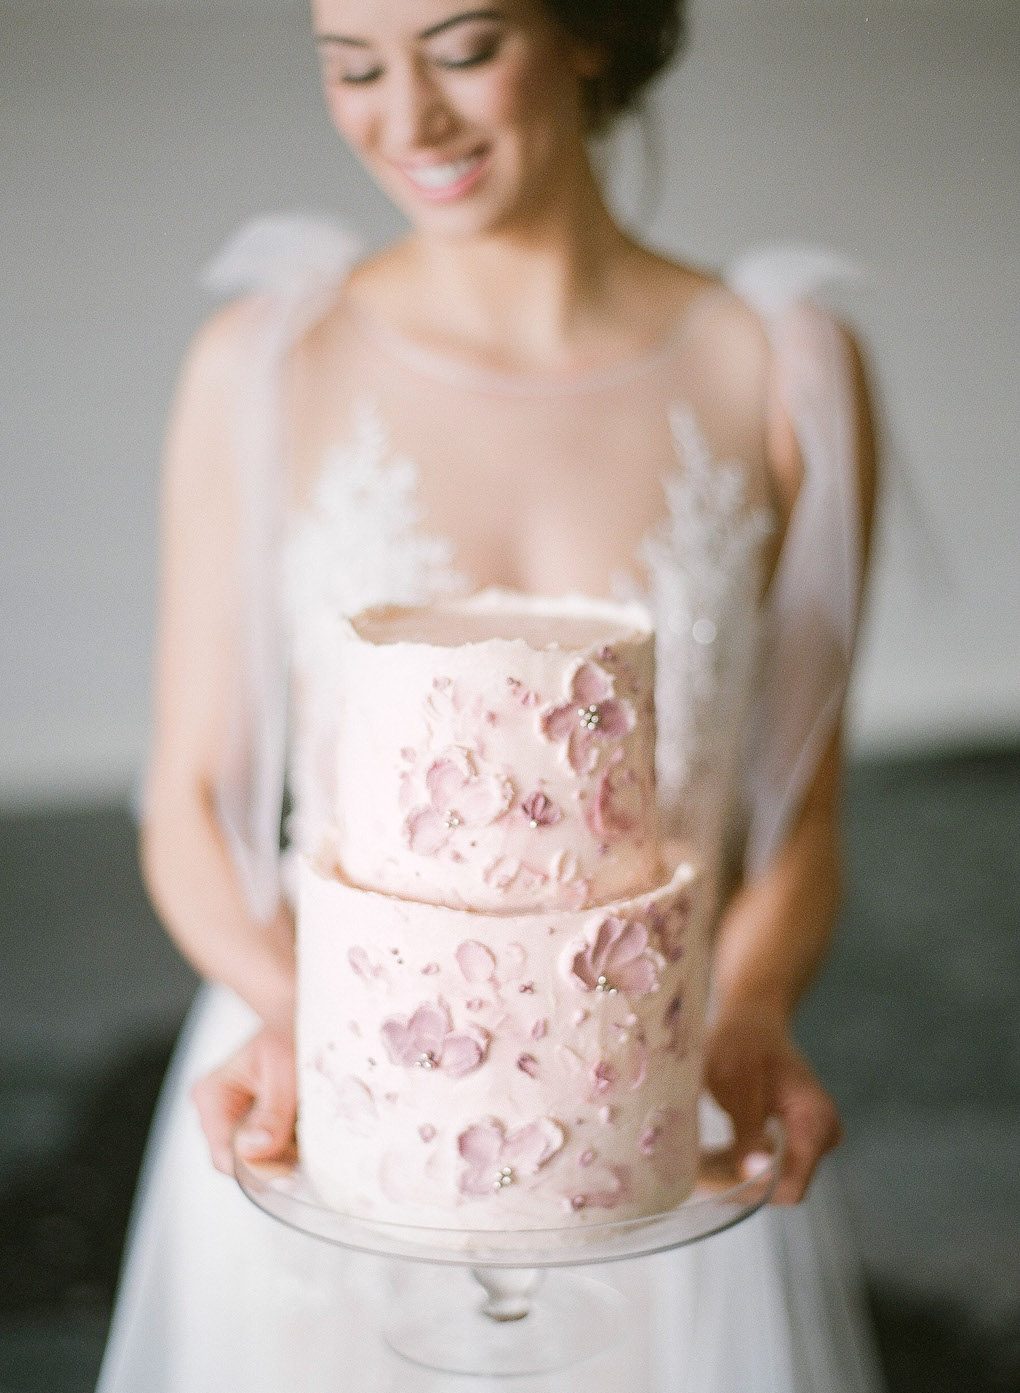 Fine art wedding cake: Soft and Subtle Palettes of Spring Blossoms | Editorial Shoot at The Renaissance Pittsburgh by Exhale Events. See more inspiration at exhale-events.com!